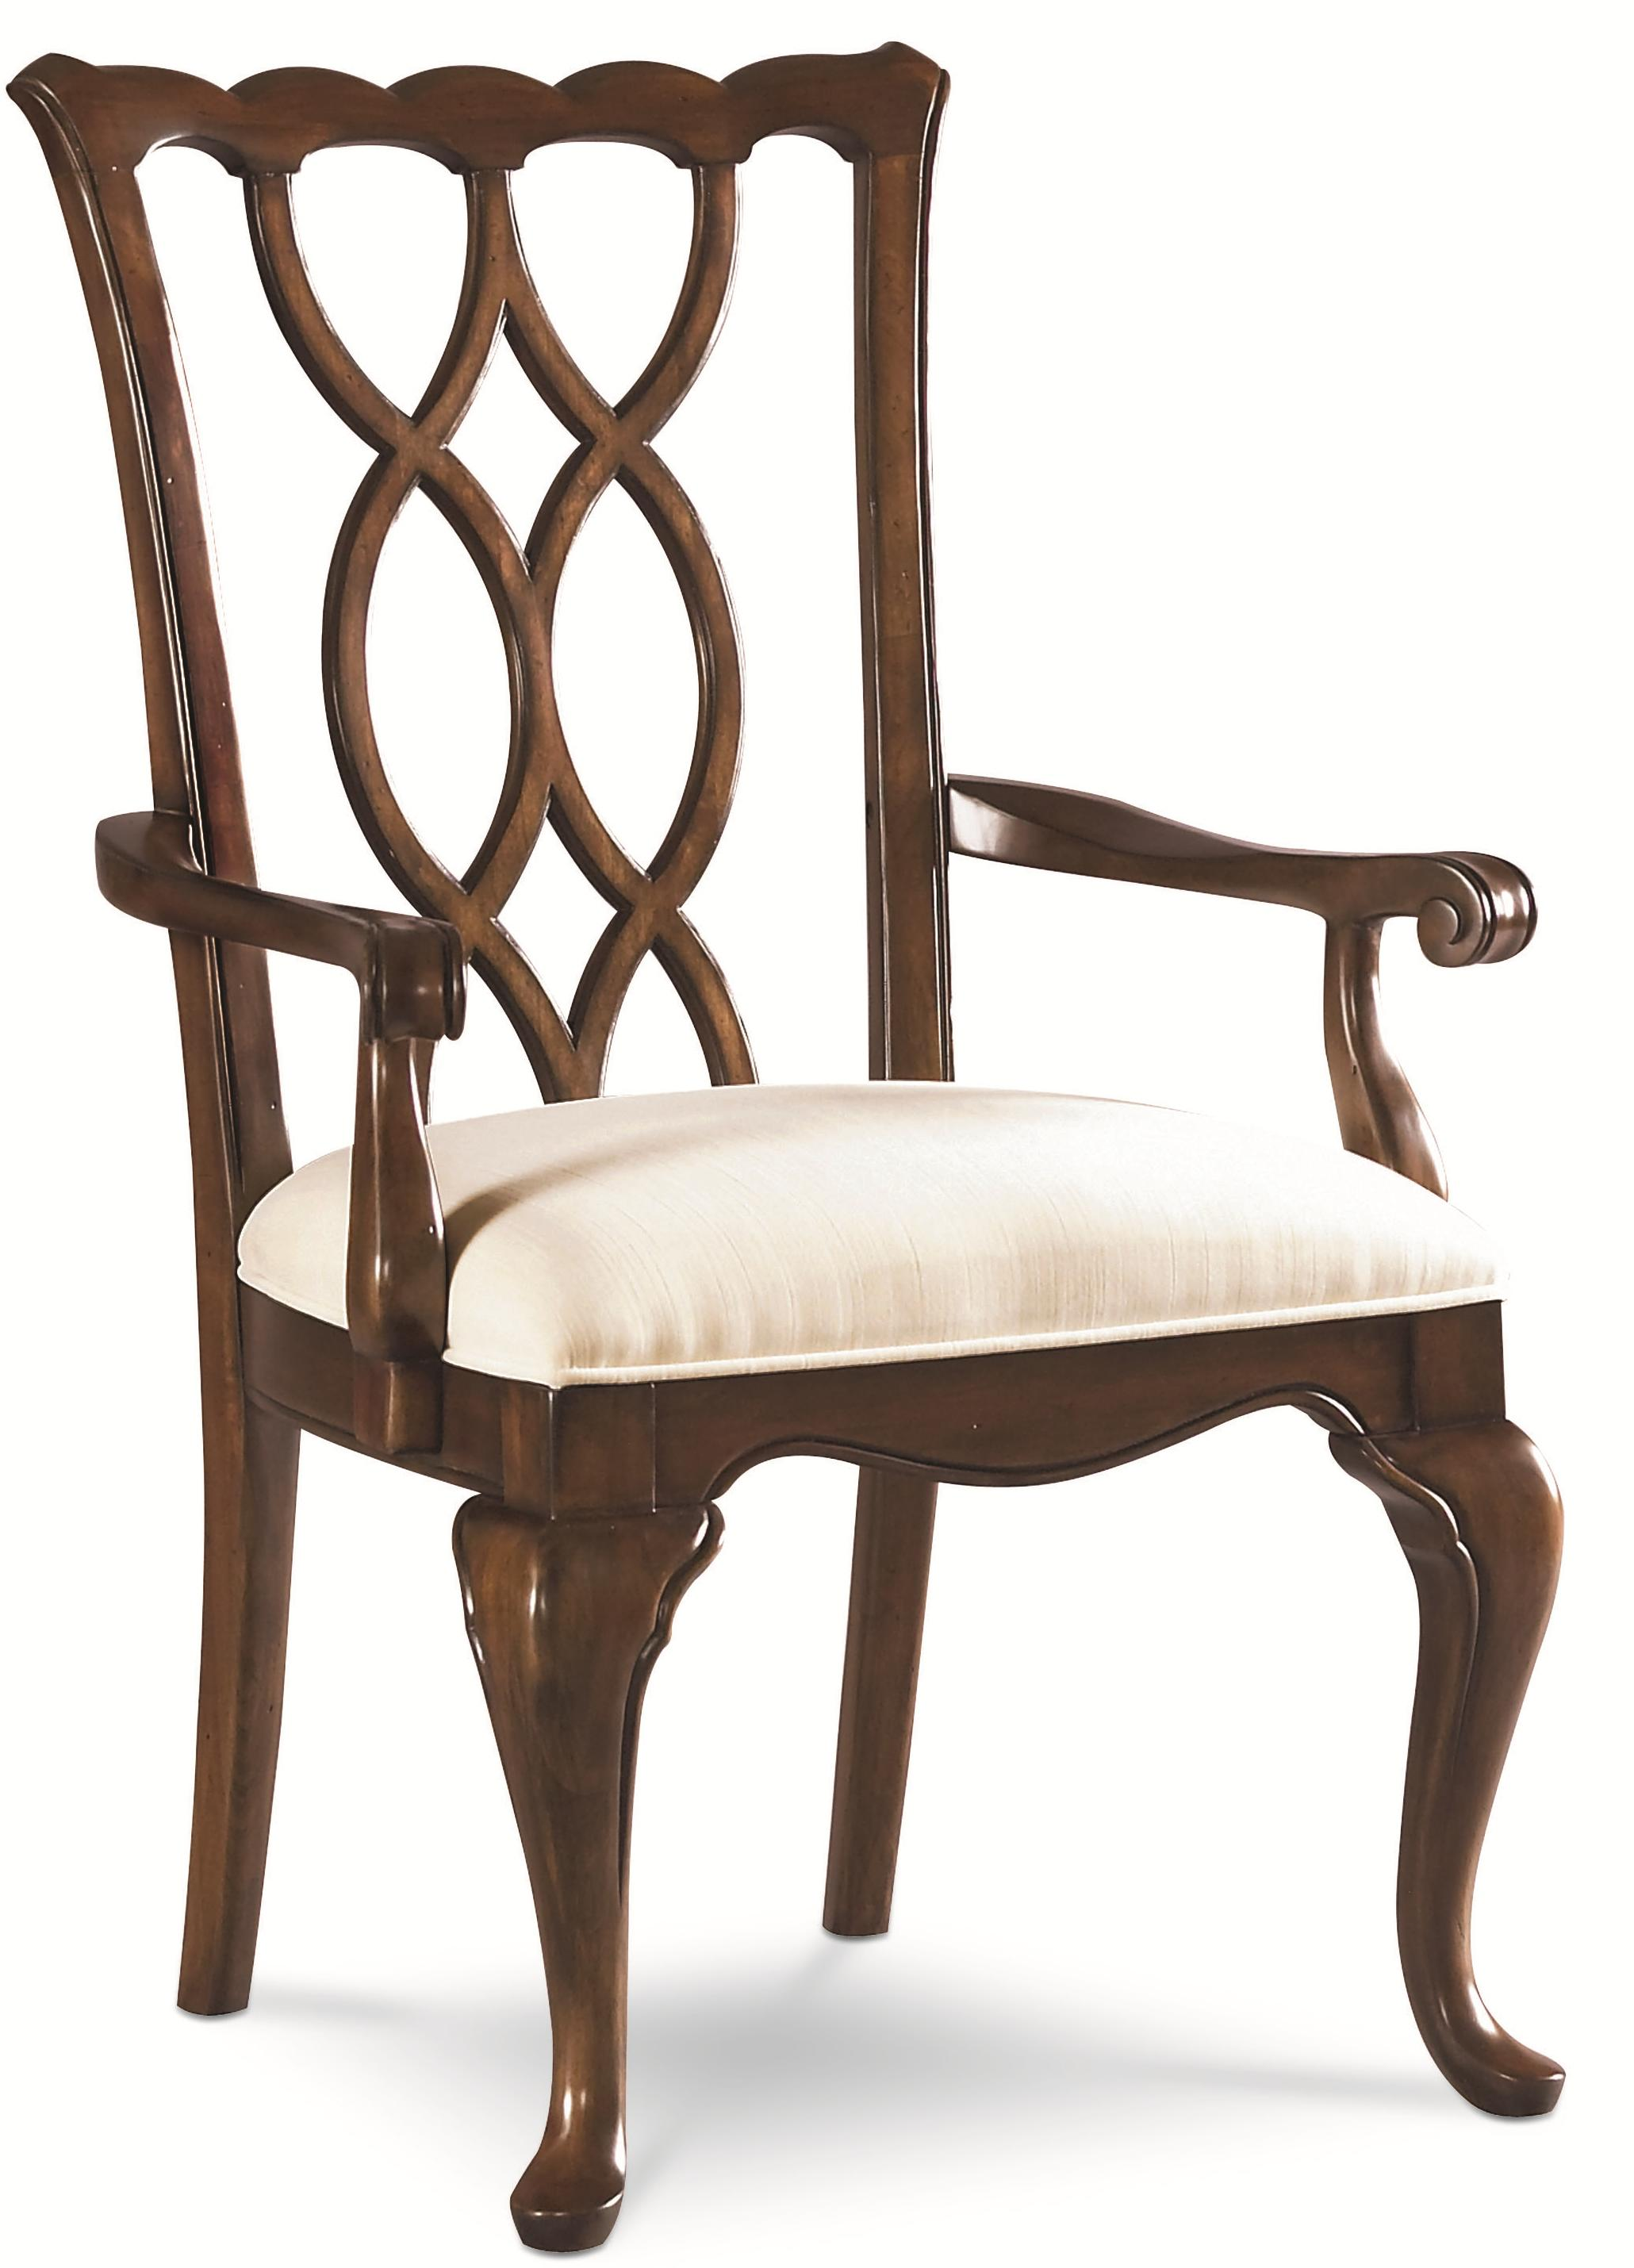 Thomasville® Tate Street Arm Chair - Item Number: 46821-832